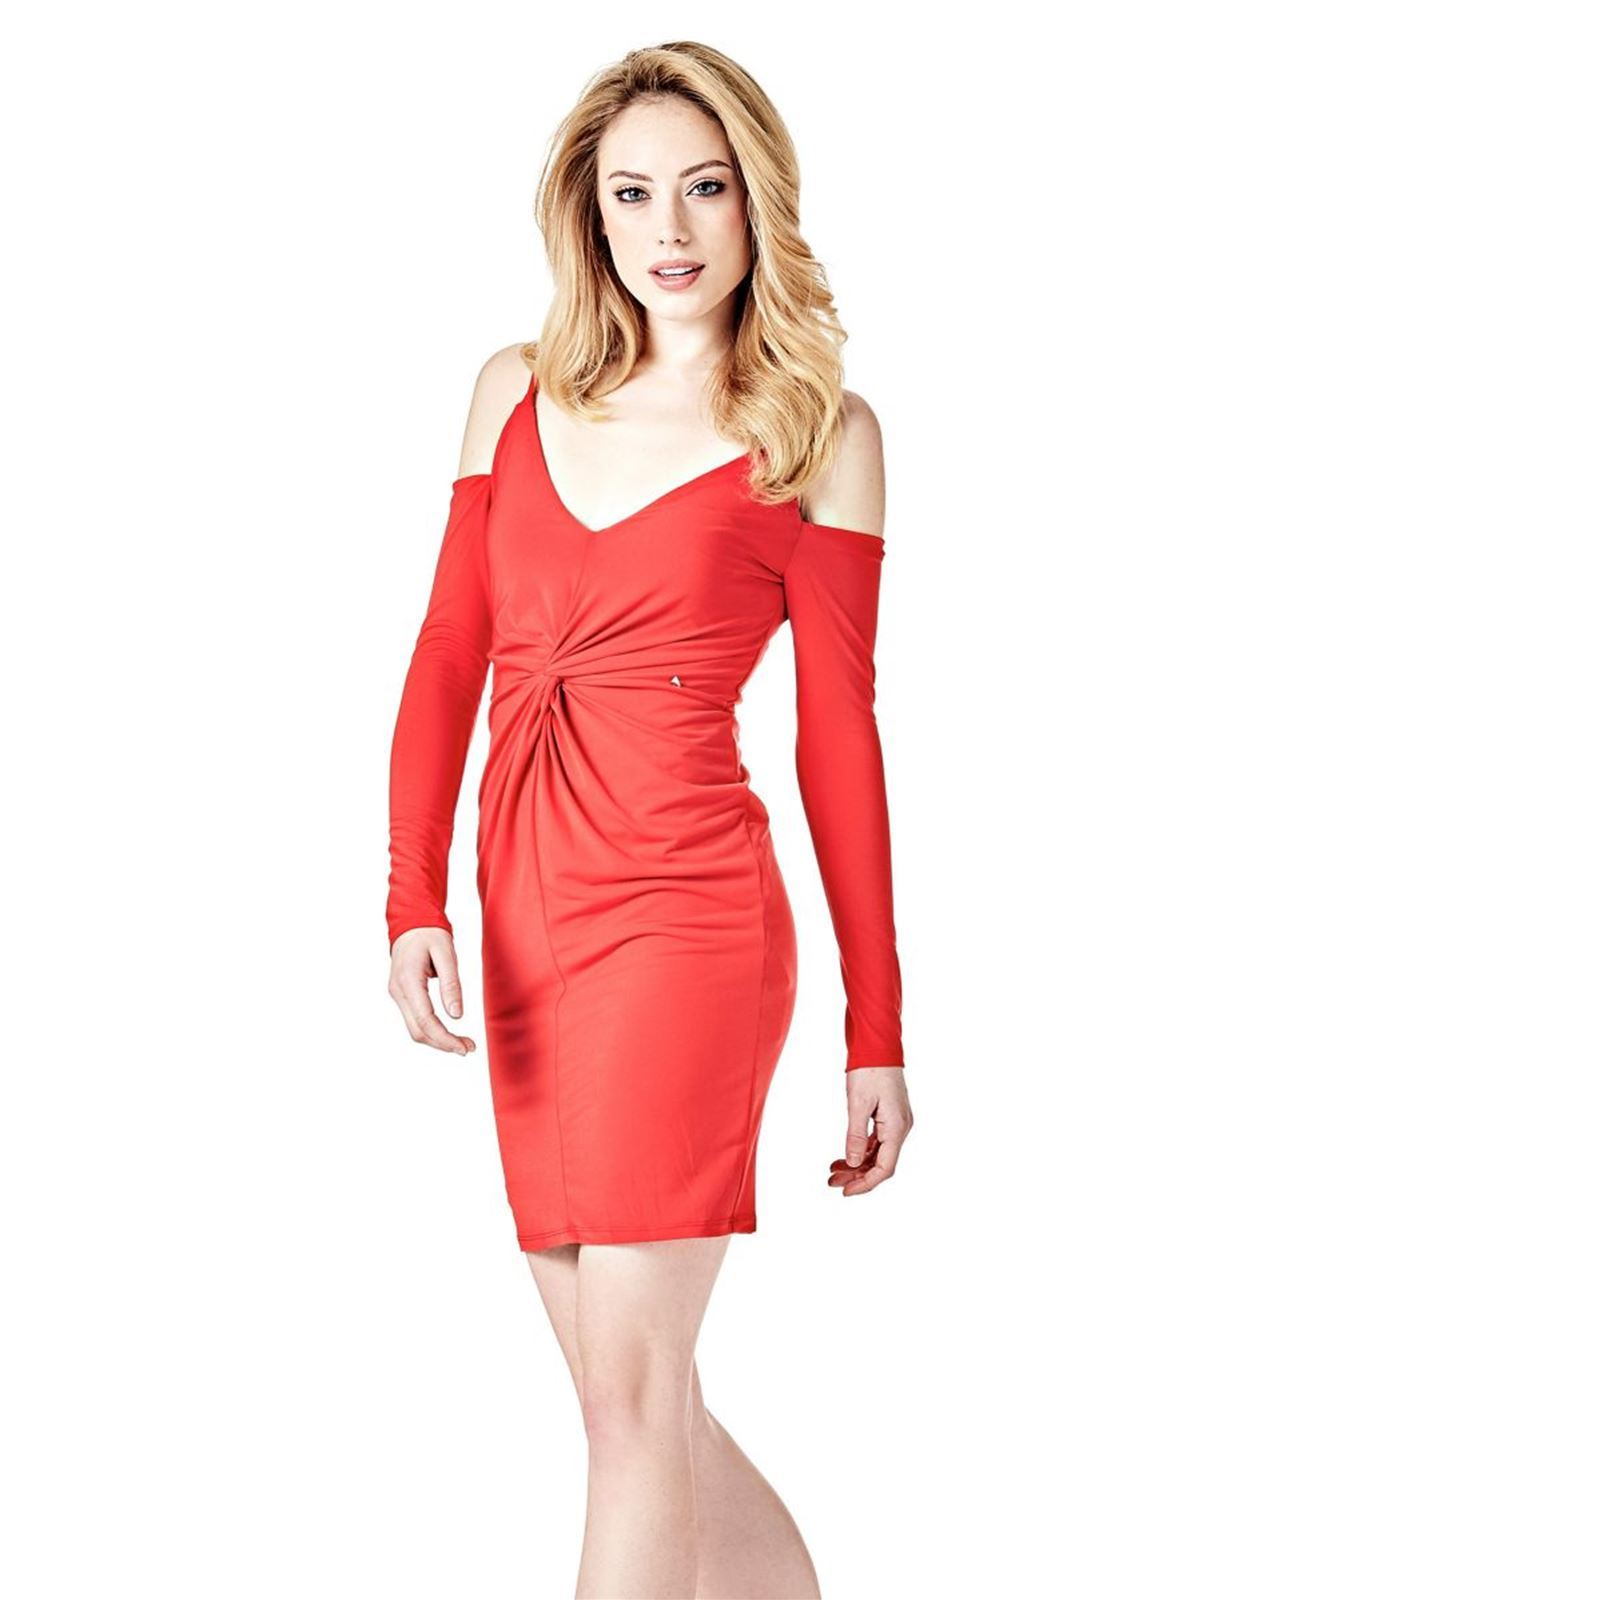 Femme V DroiteRouge Femme Robe Guess DroiteRouge Guess Robe GqzSUVMp